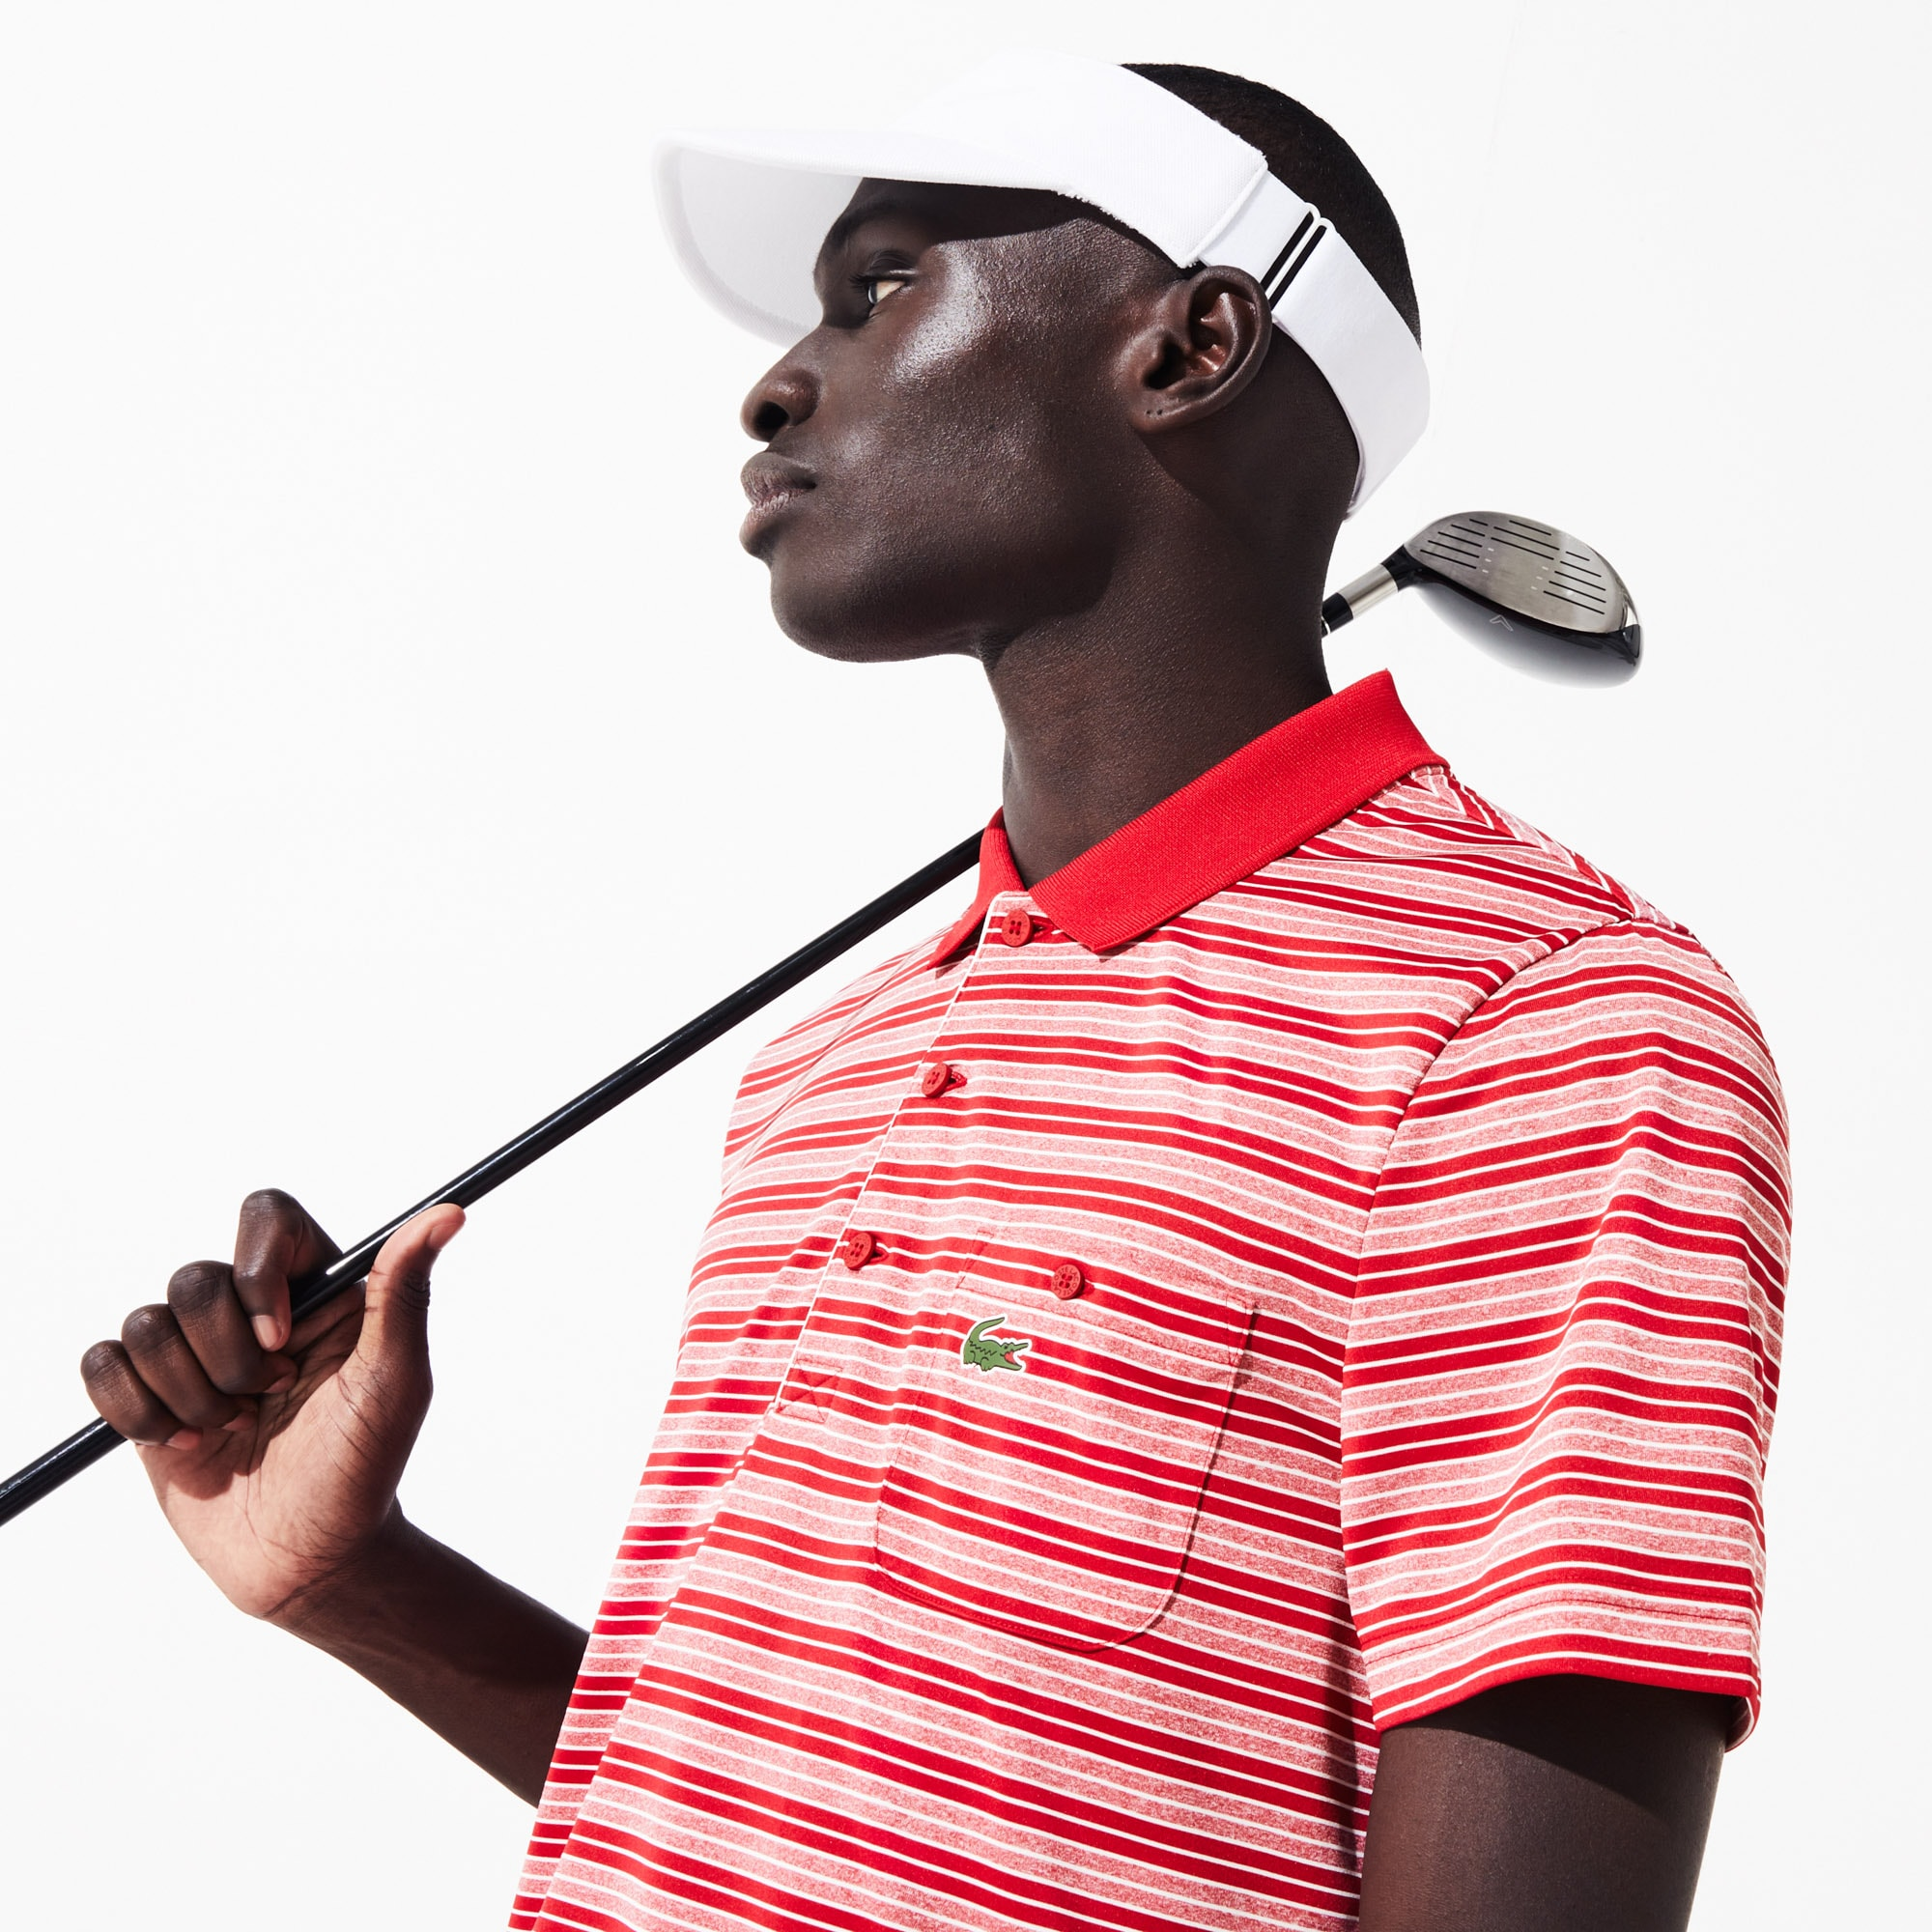 Lacoste Tops Men's SPORT Breathable Jersey Golf Polo